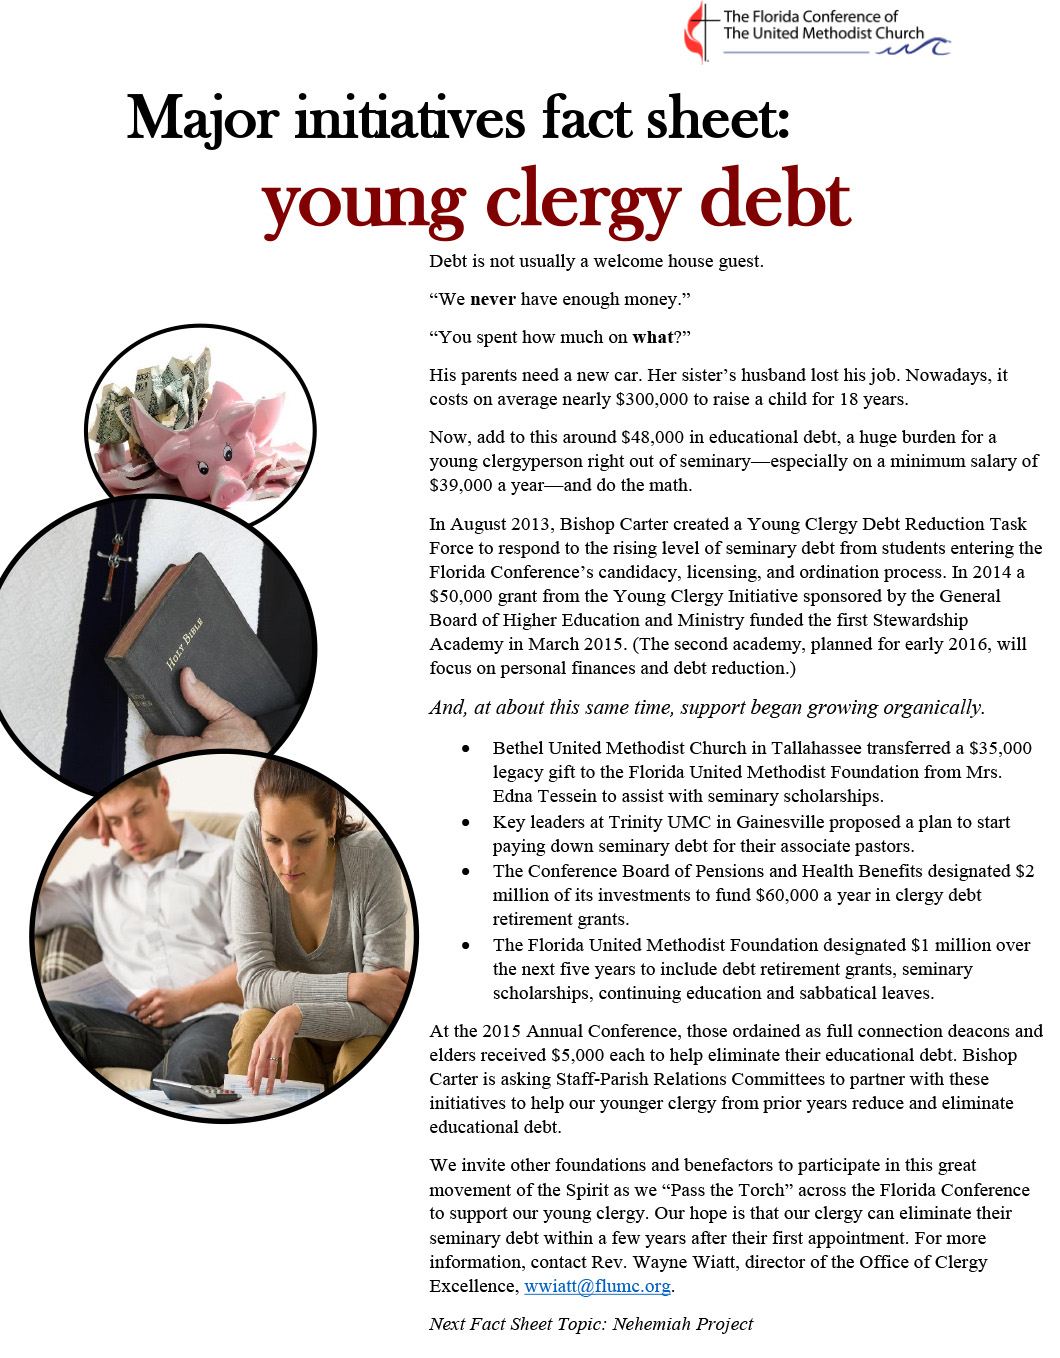 "Major initiatives fact sheet: young clergy debt Debt is not usually a welcome house guest. ""We never have enough money."" ""You spent how much on what?"" His parents need a new car. Her sister's husband lost his job. Nowadays, it costs on average nearly $300,000 to raise a child for 18 years. Now, add to this around $48,000 in educational debt, a huge burden for a young clergyperson right out of seminary—especially on a minimum salary of $39,000 a year—and do the math. In August 2013, Bishop Carter created a Young Clergy Debt Reduction Task Force to respond to the rising level of seminary debt from students entering the Florida Conference's candidacy, licensing, and ordination process. In 2014 a $50,000 grant from the Young Clergy Initiative sponsored by the General Board of Higher Education and Ministry funded the first Stewardship Academy in March 2015. (The second academy, planned for early 2016, will focus on personal finances and debt reduction.) And, at about this same time, support began growing organically. ? Bethel United Methodist Church in Tallahassee transferred a $35,000 legacy gift to the Florida United Methodist Foundation from Mrs. Edna Tessein to assist with seminary scholarships. ? Key leaders at Trinity UMC in Gainesville proposed a plan to start paying down seminary debt for their associate pastors. ? The Conference Board of Pensions and Health Benefits designated $2 million of its investments to fund $60,000 a year in clergy debt retirement grants. ? The Florida United Methodist Foundation designated $1 million over the next five years to include debt retirement grants, seminary scholarships, continuing education and sabbatical leaves. At the 2015 Annual Conference, those ordained as full connection deacons and elders received $5,000 each to help eliminate their educational debt. Bishop Carter is asking Staff-Parish Relations Committees to partner with these initiatives to help our younger clergy from prior years reduce and eliminate educational debt. We invite other foundations and benefactors to participate in this great movement of the Spirit as we ""Pass the Torch"" across the Florida Conference to support our young clergy. Our hope is that our clergy can eliminate their seminary debt within a few years after their first appointment. For more information, contact Rev. Wayne Wiatt, director of the Office of Clergy Excellence, wwiatt@flumc.org. Next Fact Sheet Topic: Nehemiah Project"